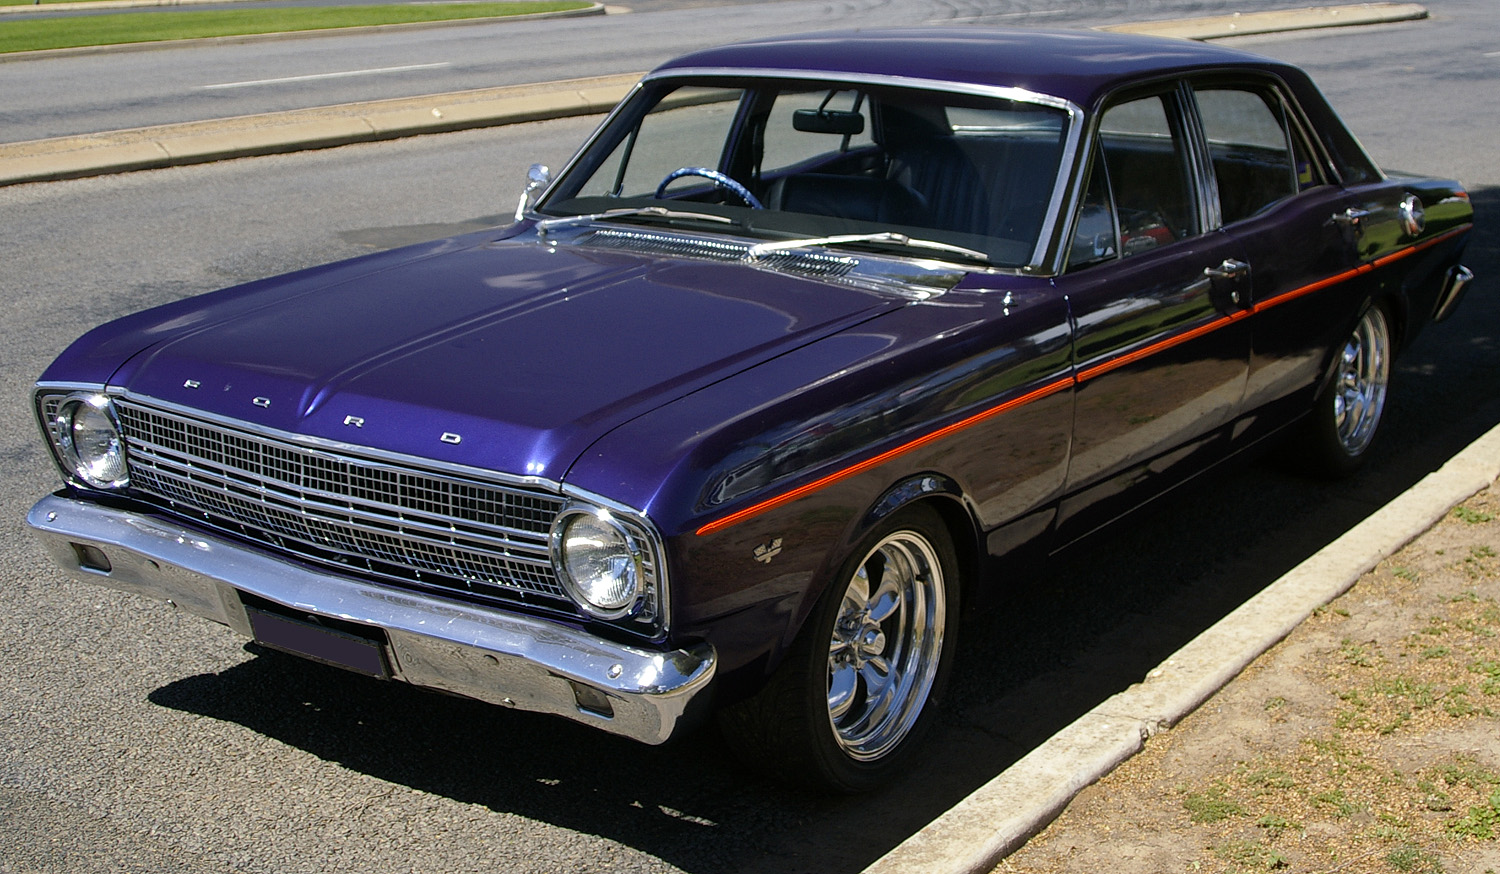 Ford Falcon Wallpapers Vehicles Hq Ford Falcon Pictures 4k Wallpapers 2019